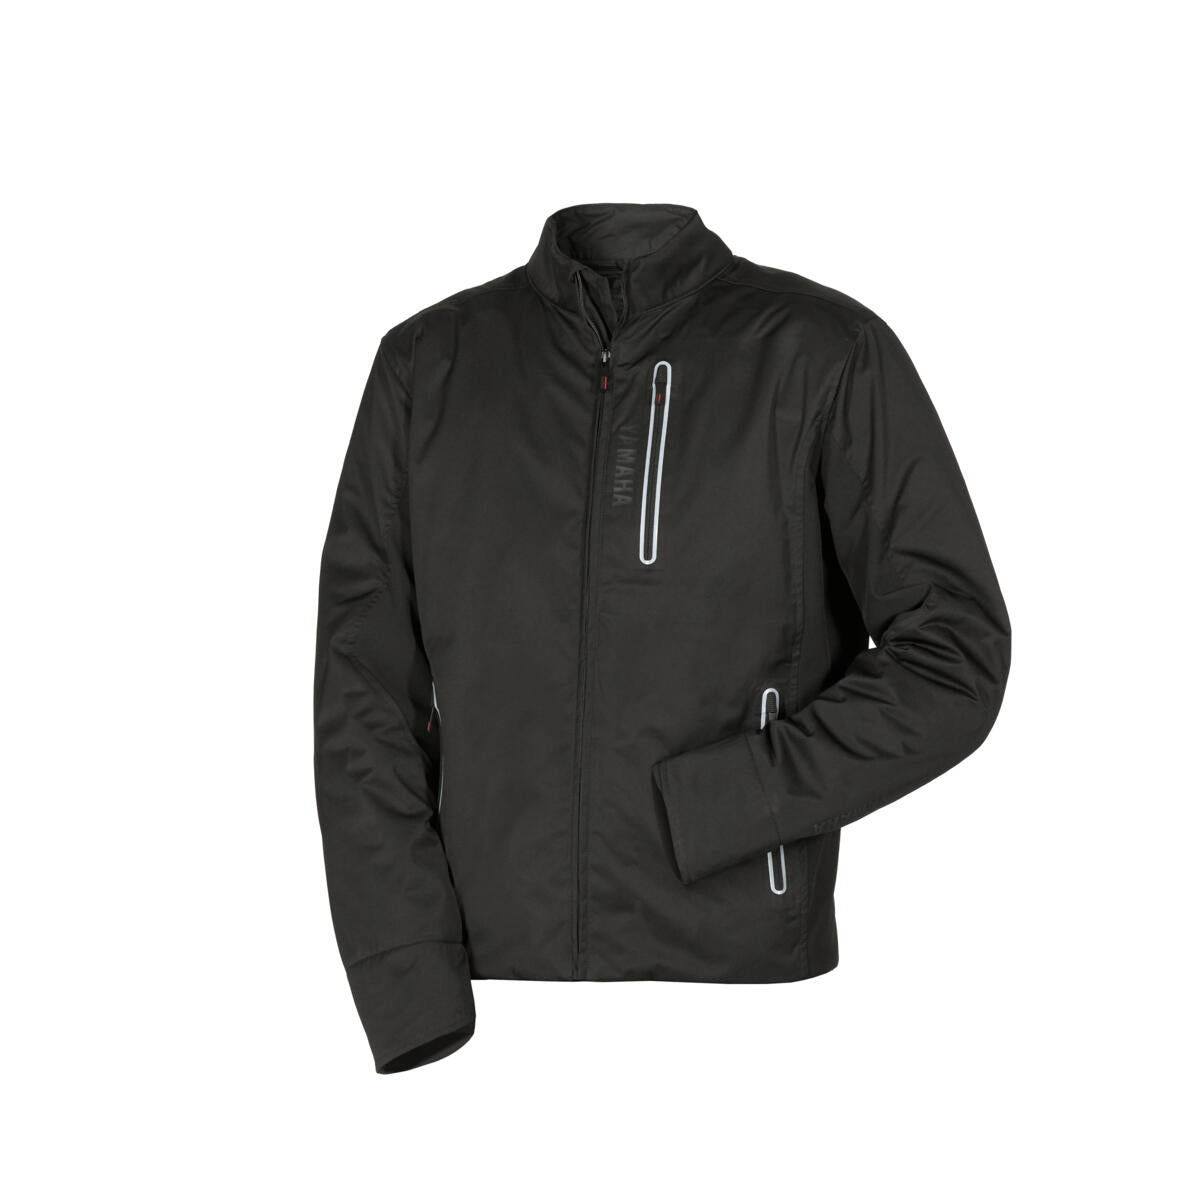 Male Touring Jacket